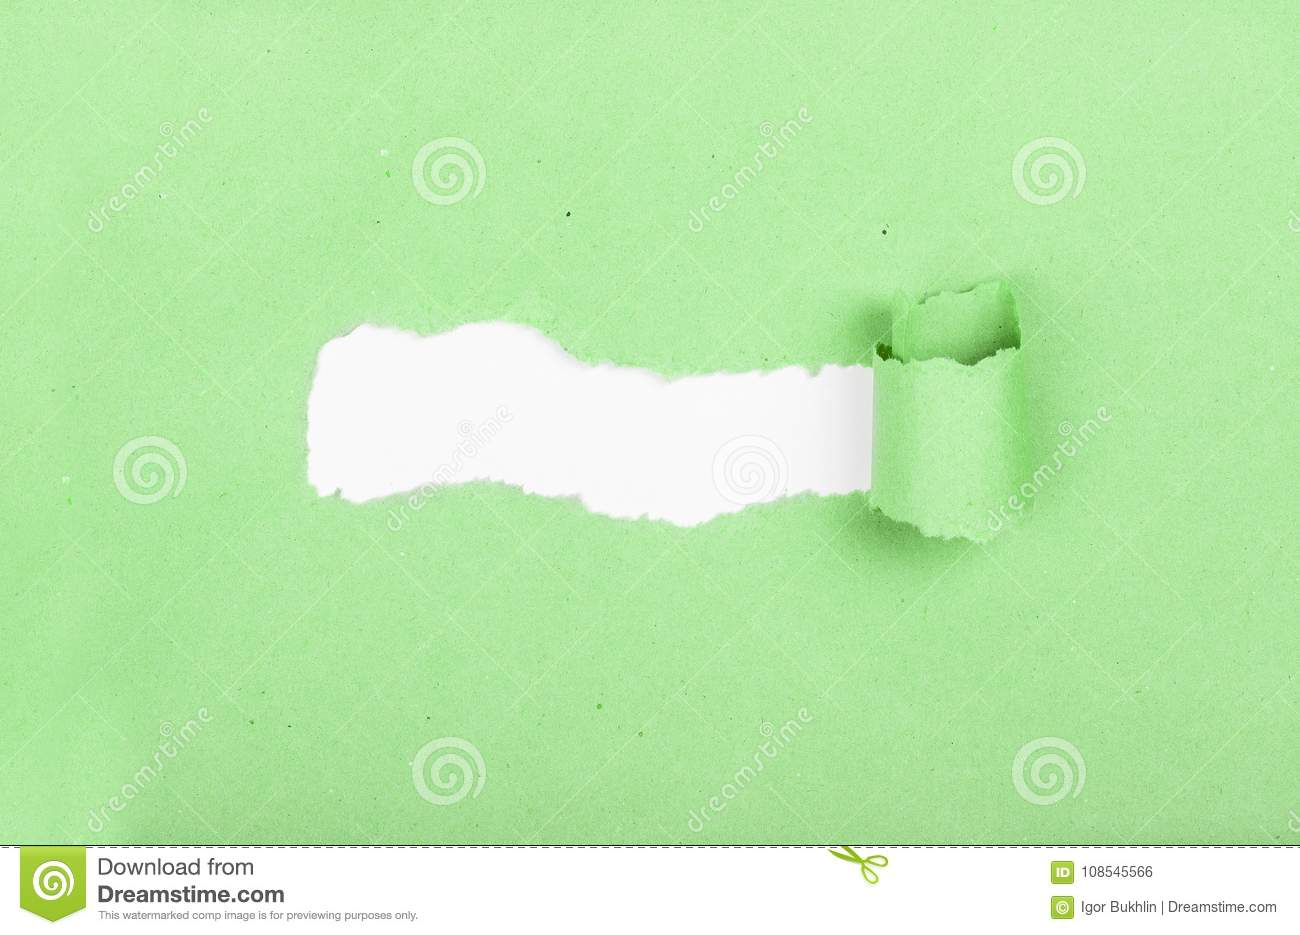 Thinking outside the box. Torn strip of paper. Idea and new innovation. Breaking new ground. Place for text. Discovery.